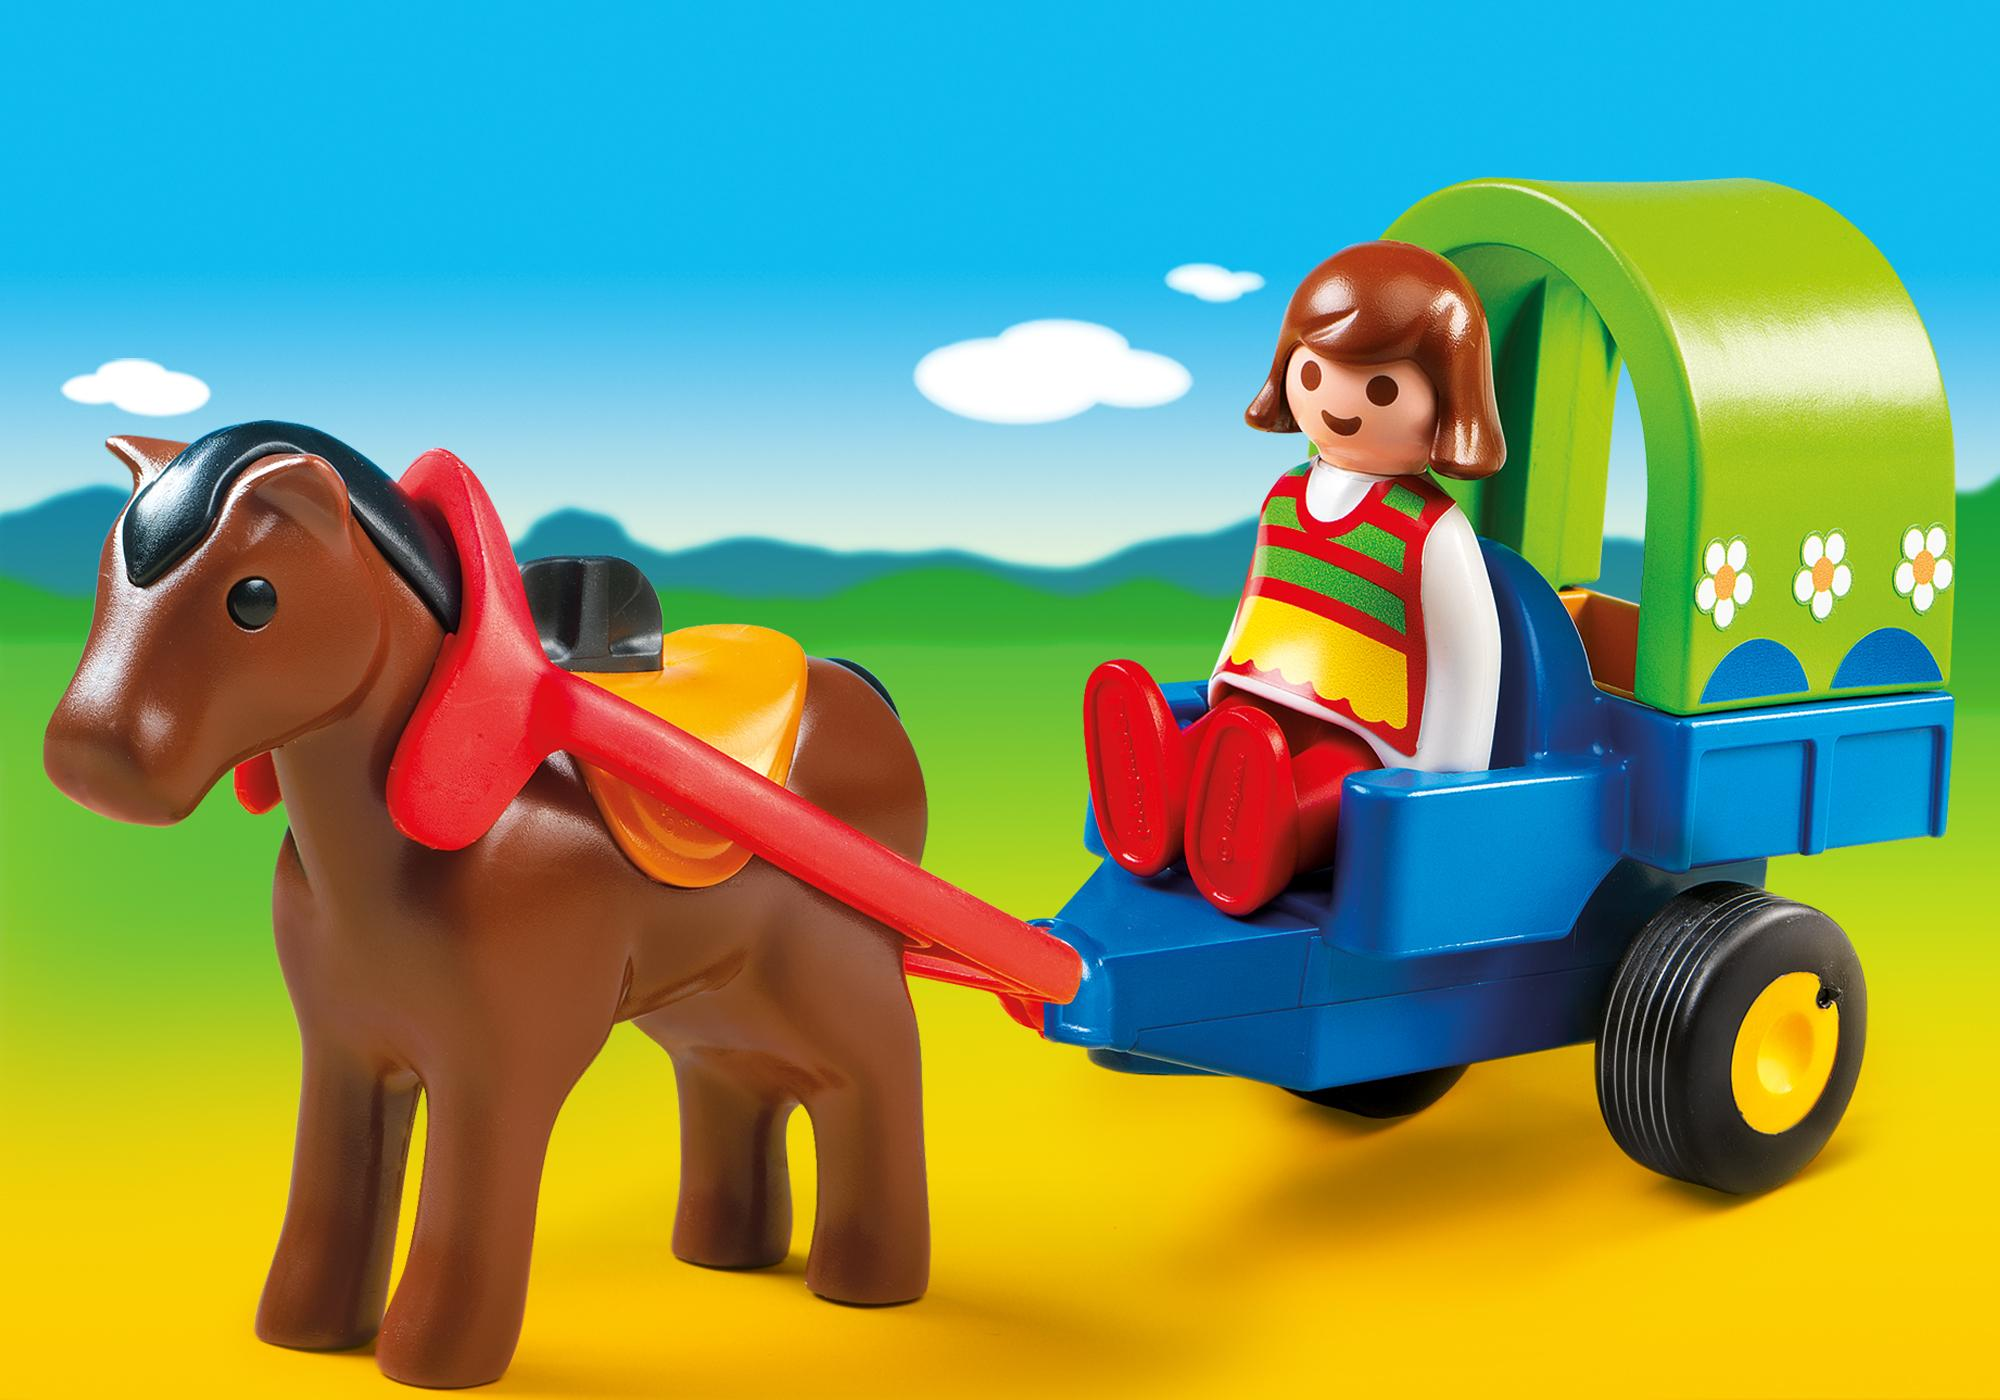 http://media.playmobil.com/i/playmobil/6779-A_product_detail